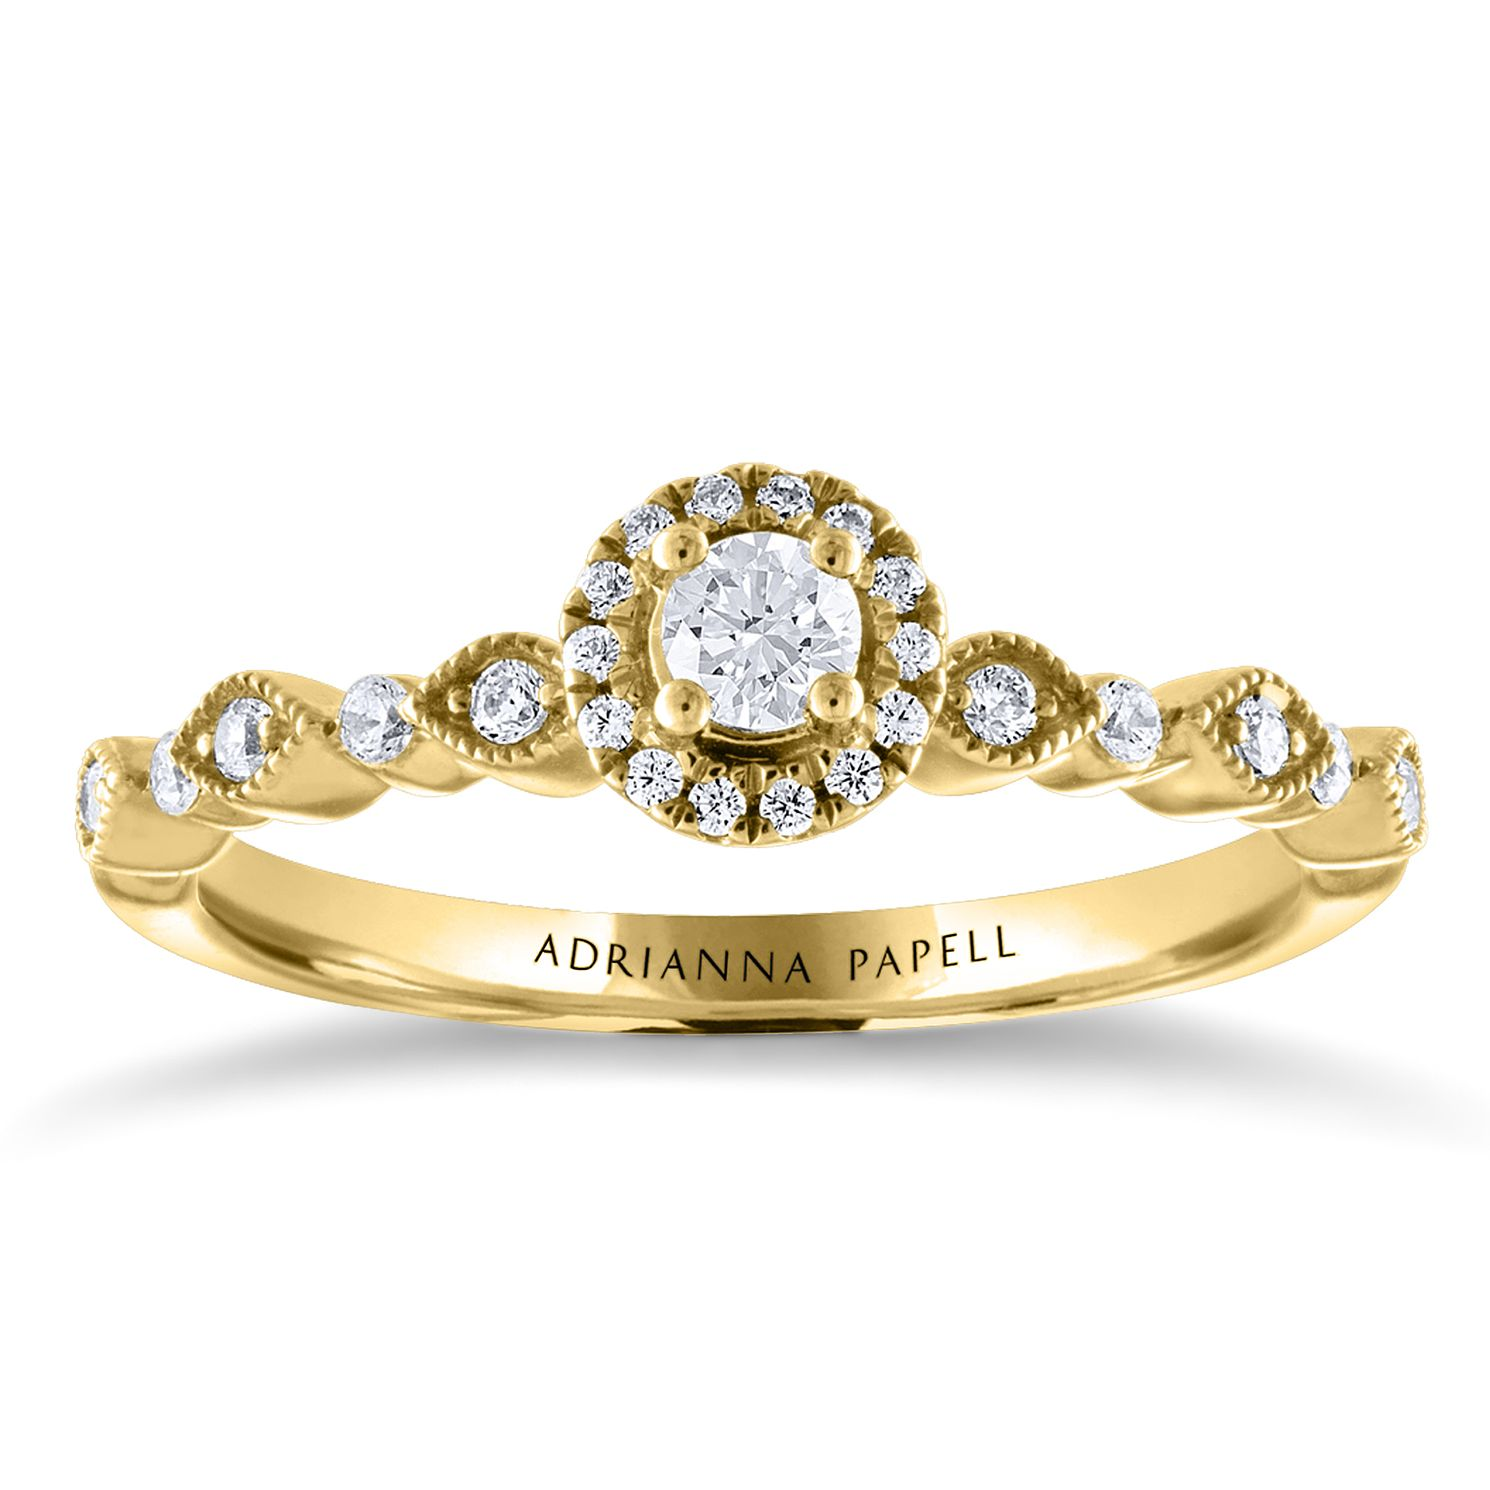 Adrianna Papell 14ct Yellow Gold 0.25ct Total Diamond Ring - Product number 2208717